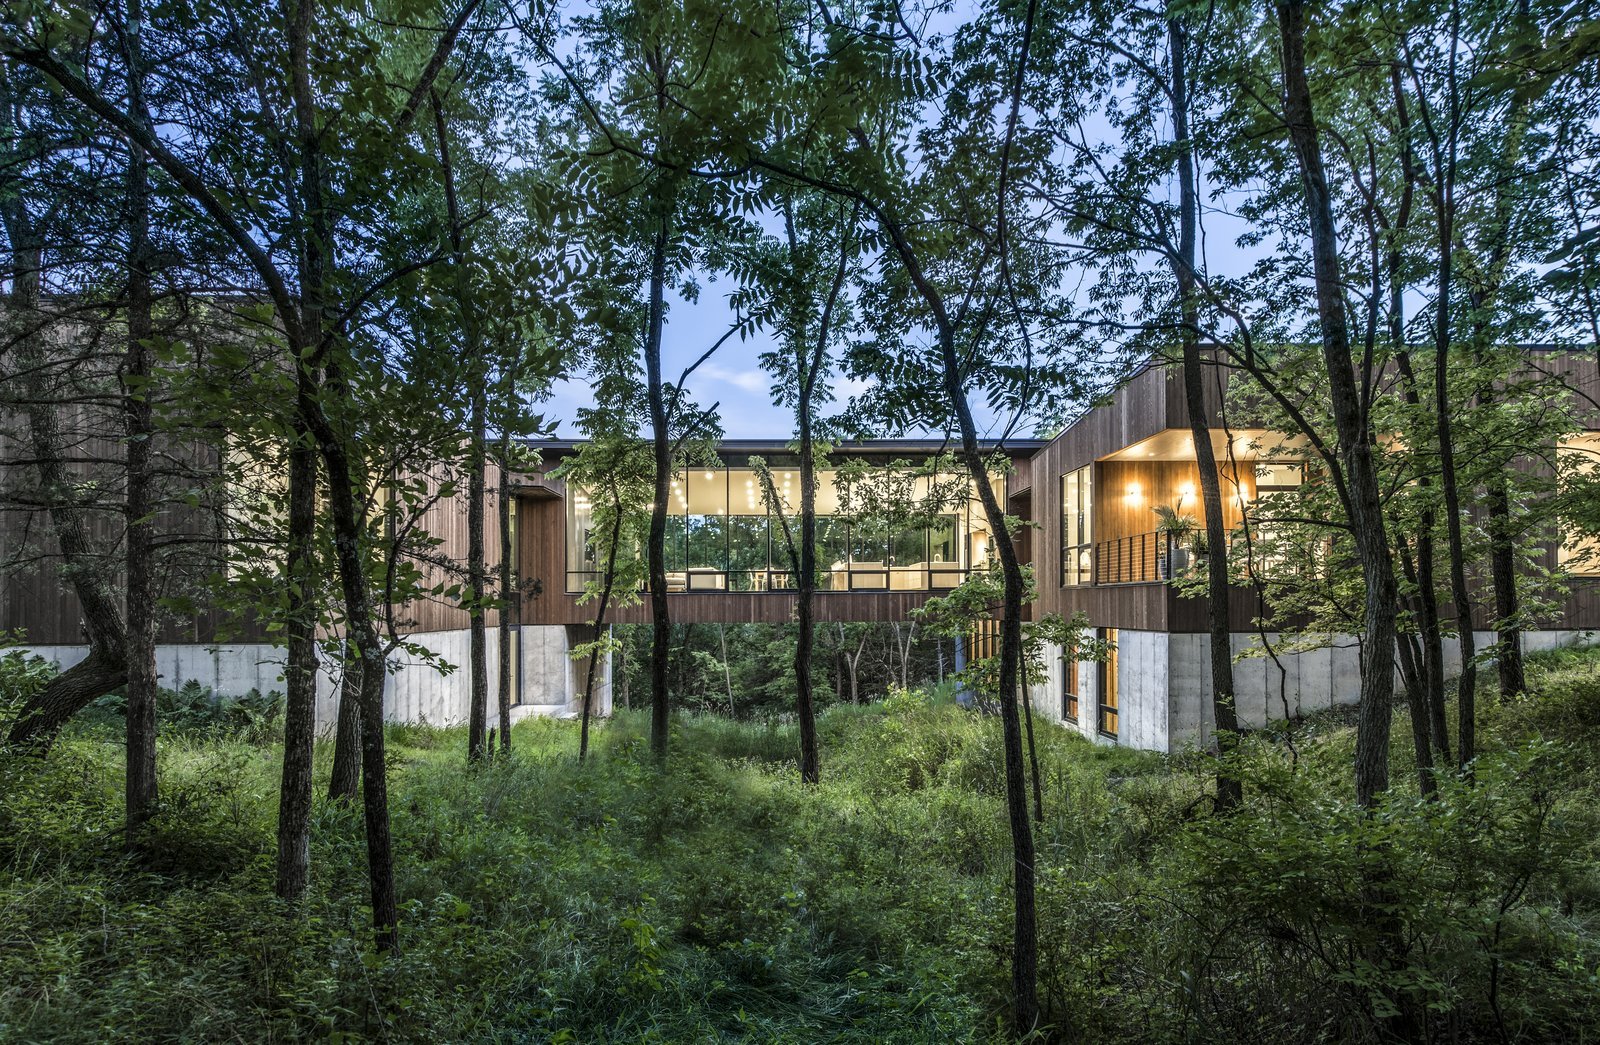 An Incredible Forest Home Leaps Over a Ravine